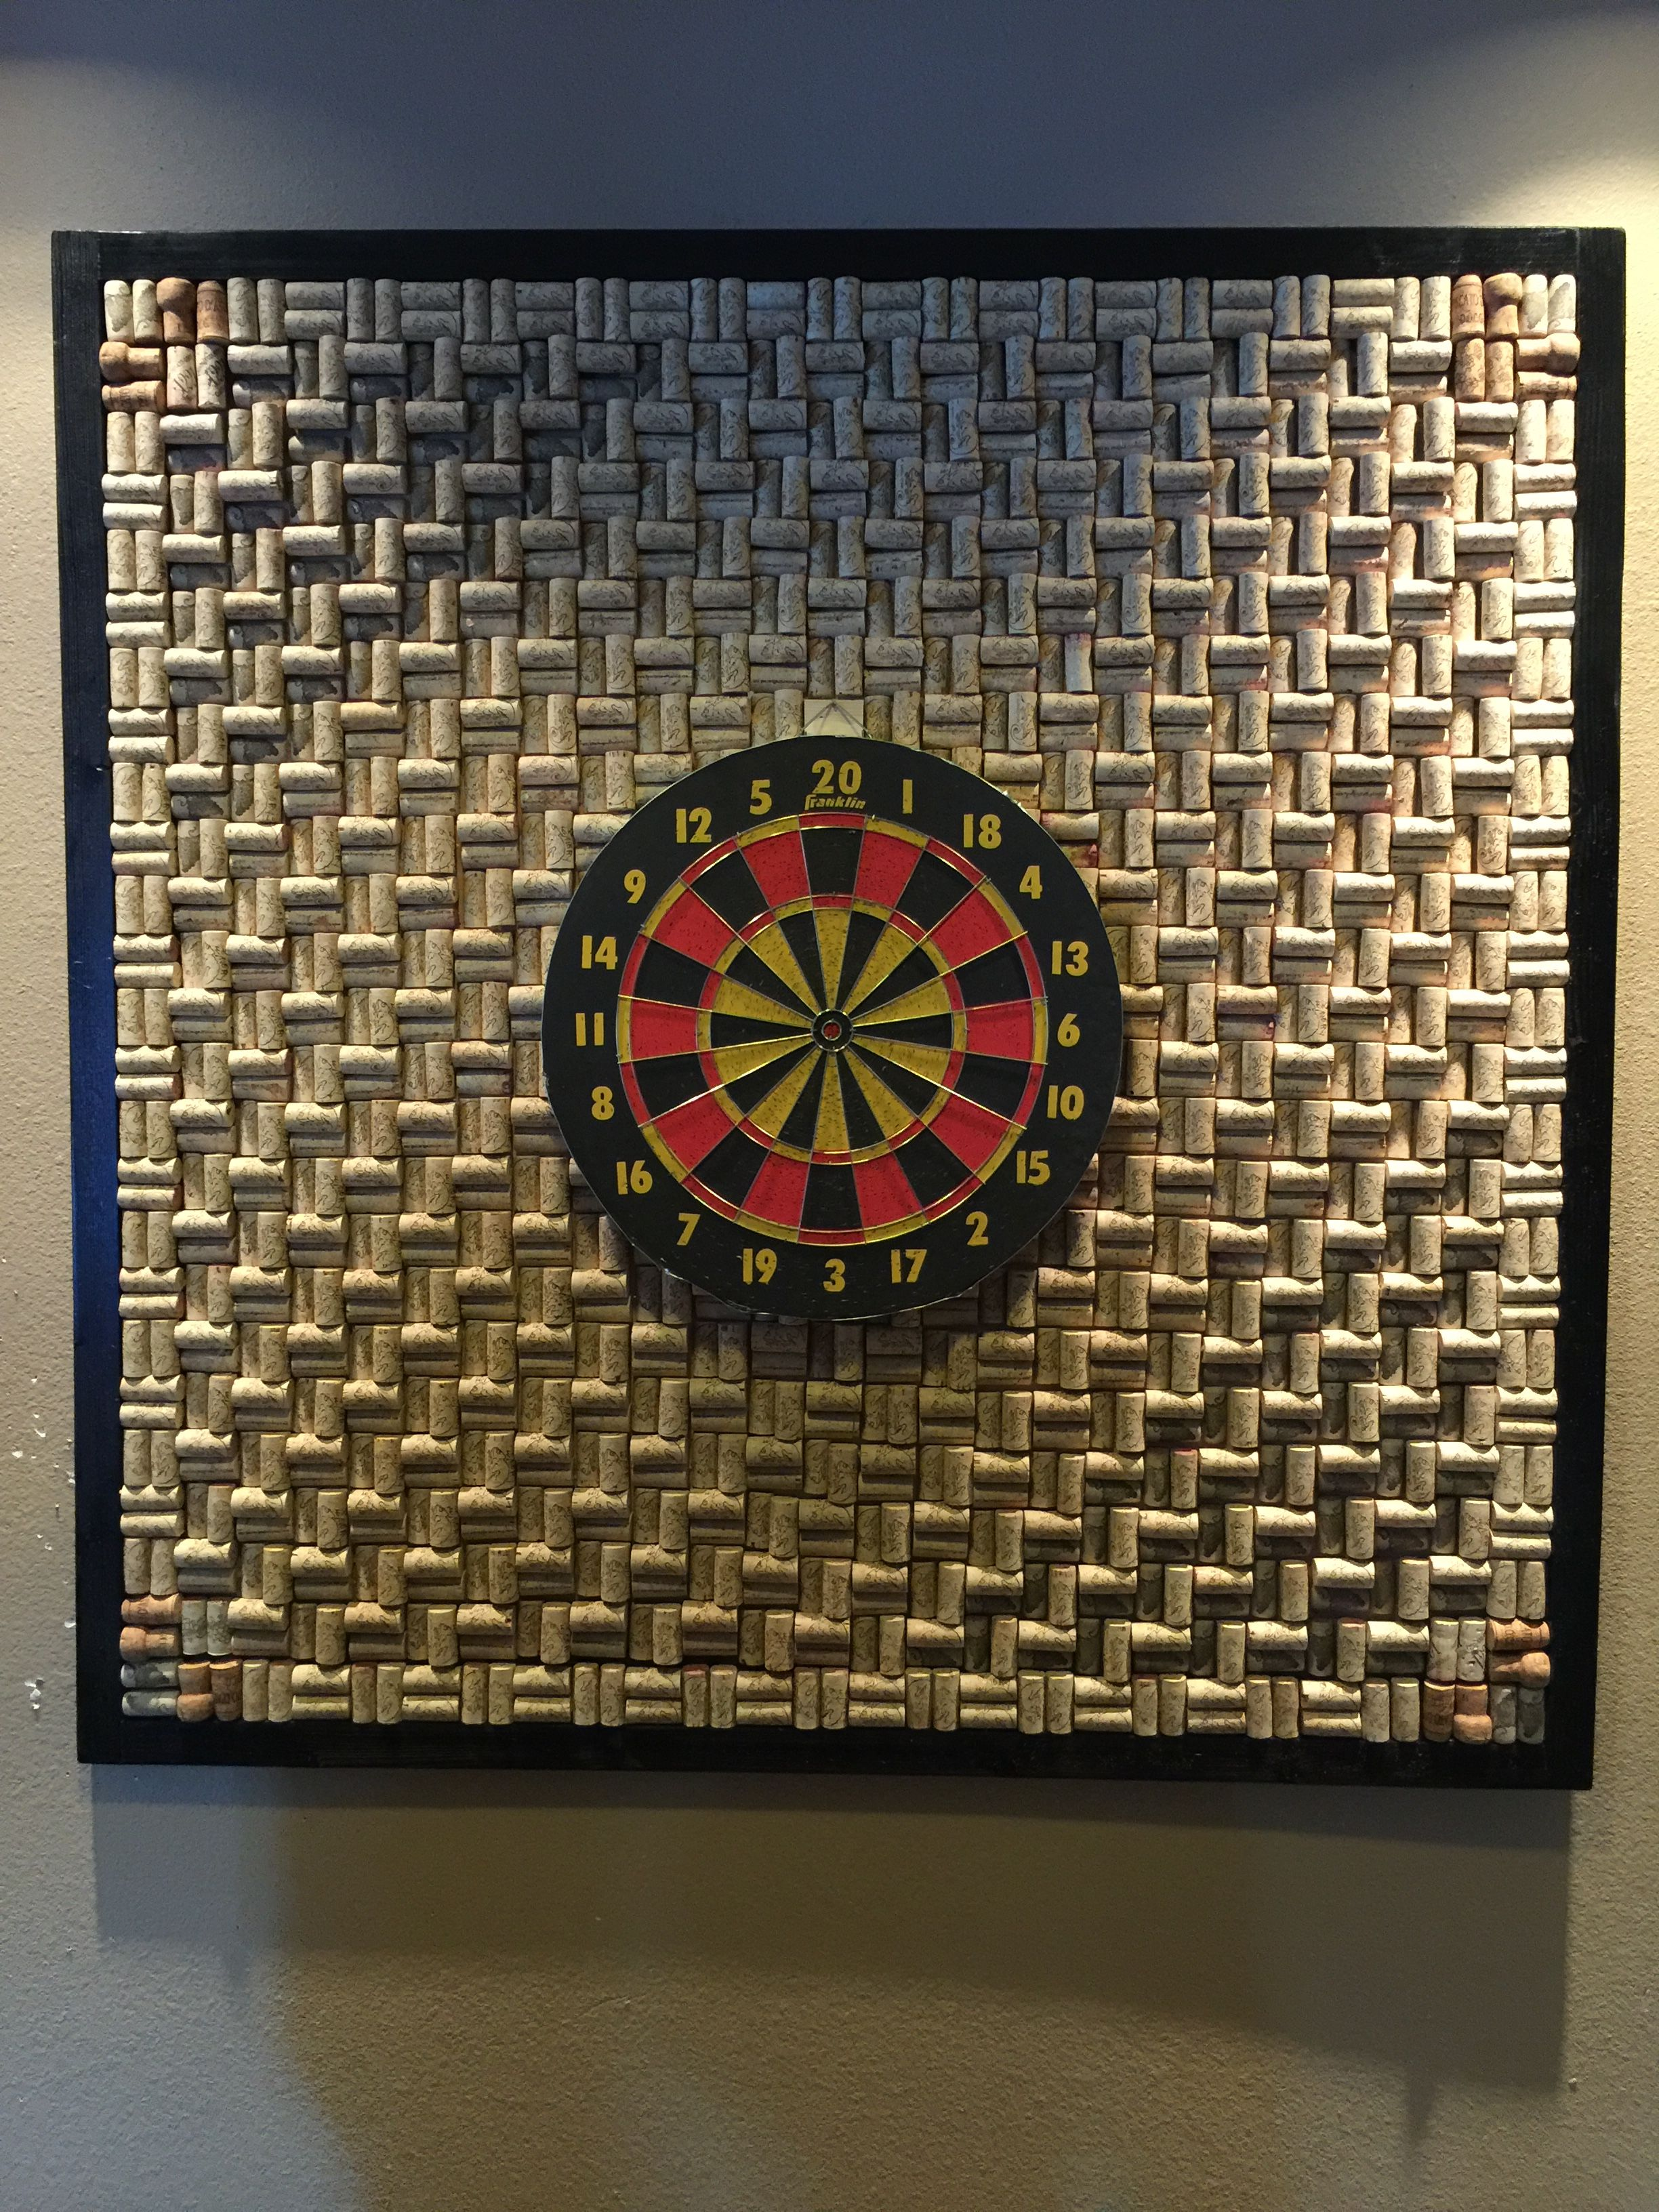 Made The Dart Board With Wine Corks Fun Project You Can Order From Kristie Carpenter On Etsy Not Included